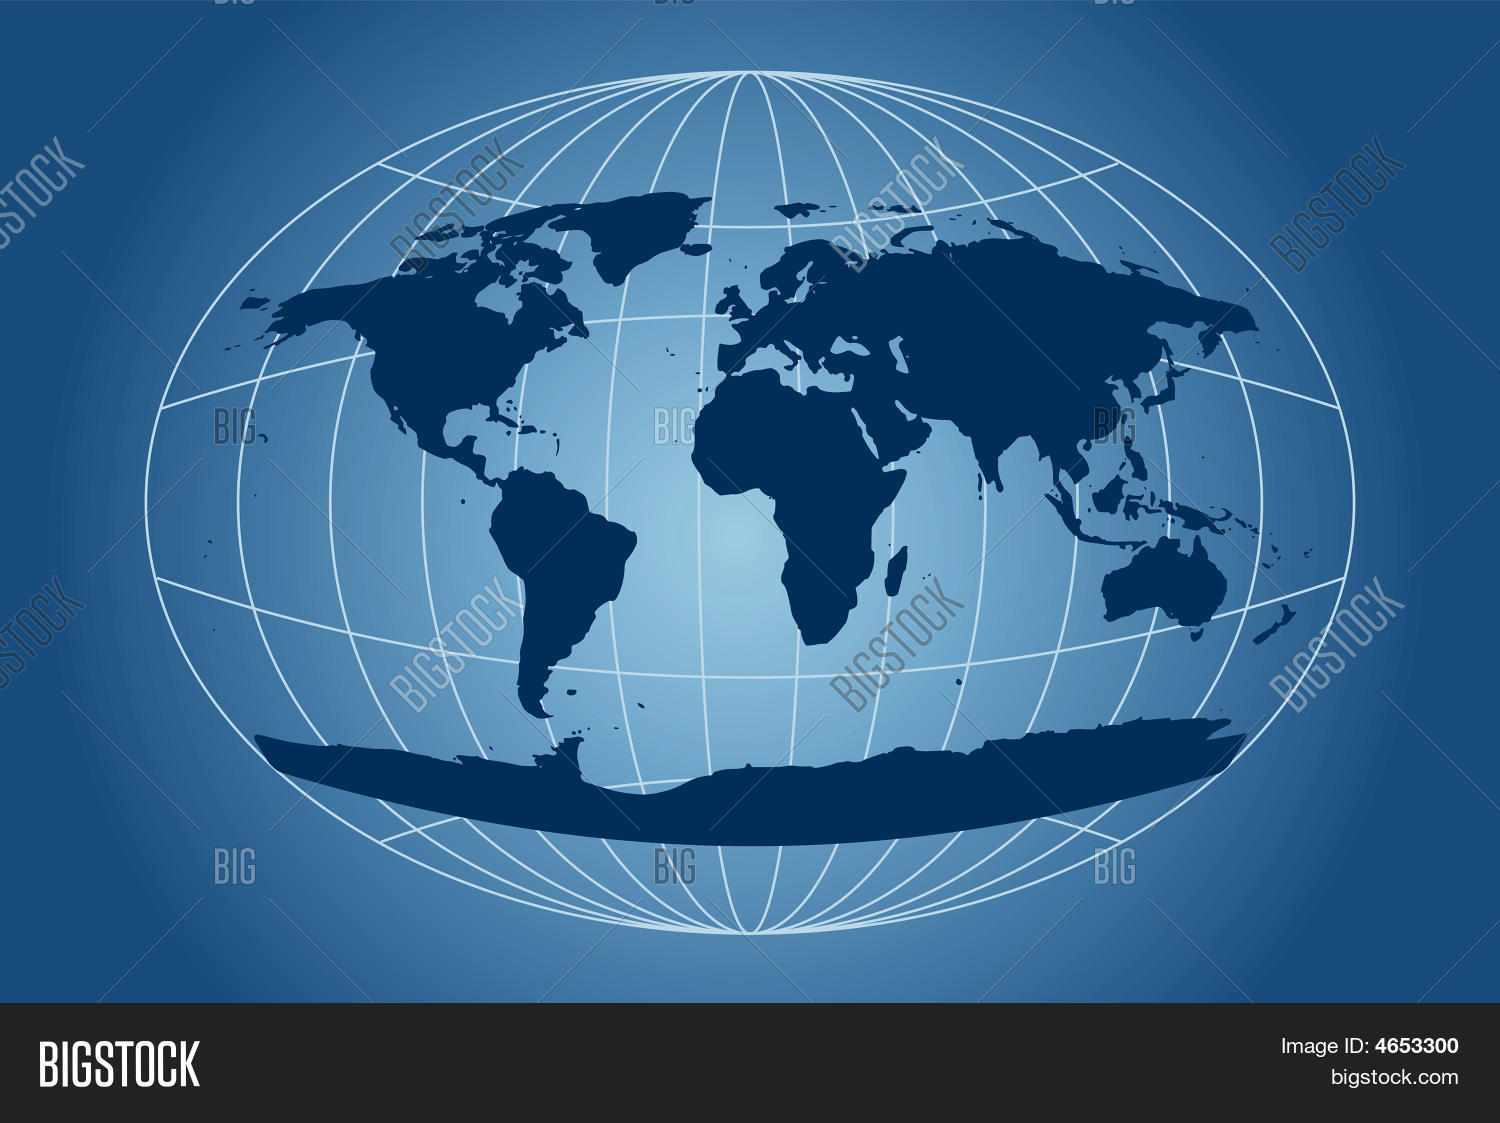 World map grid vector photo free trial bigstock world map grid gumiabroncs Image collections